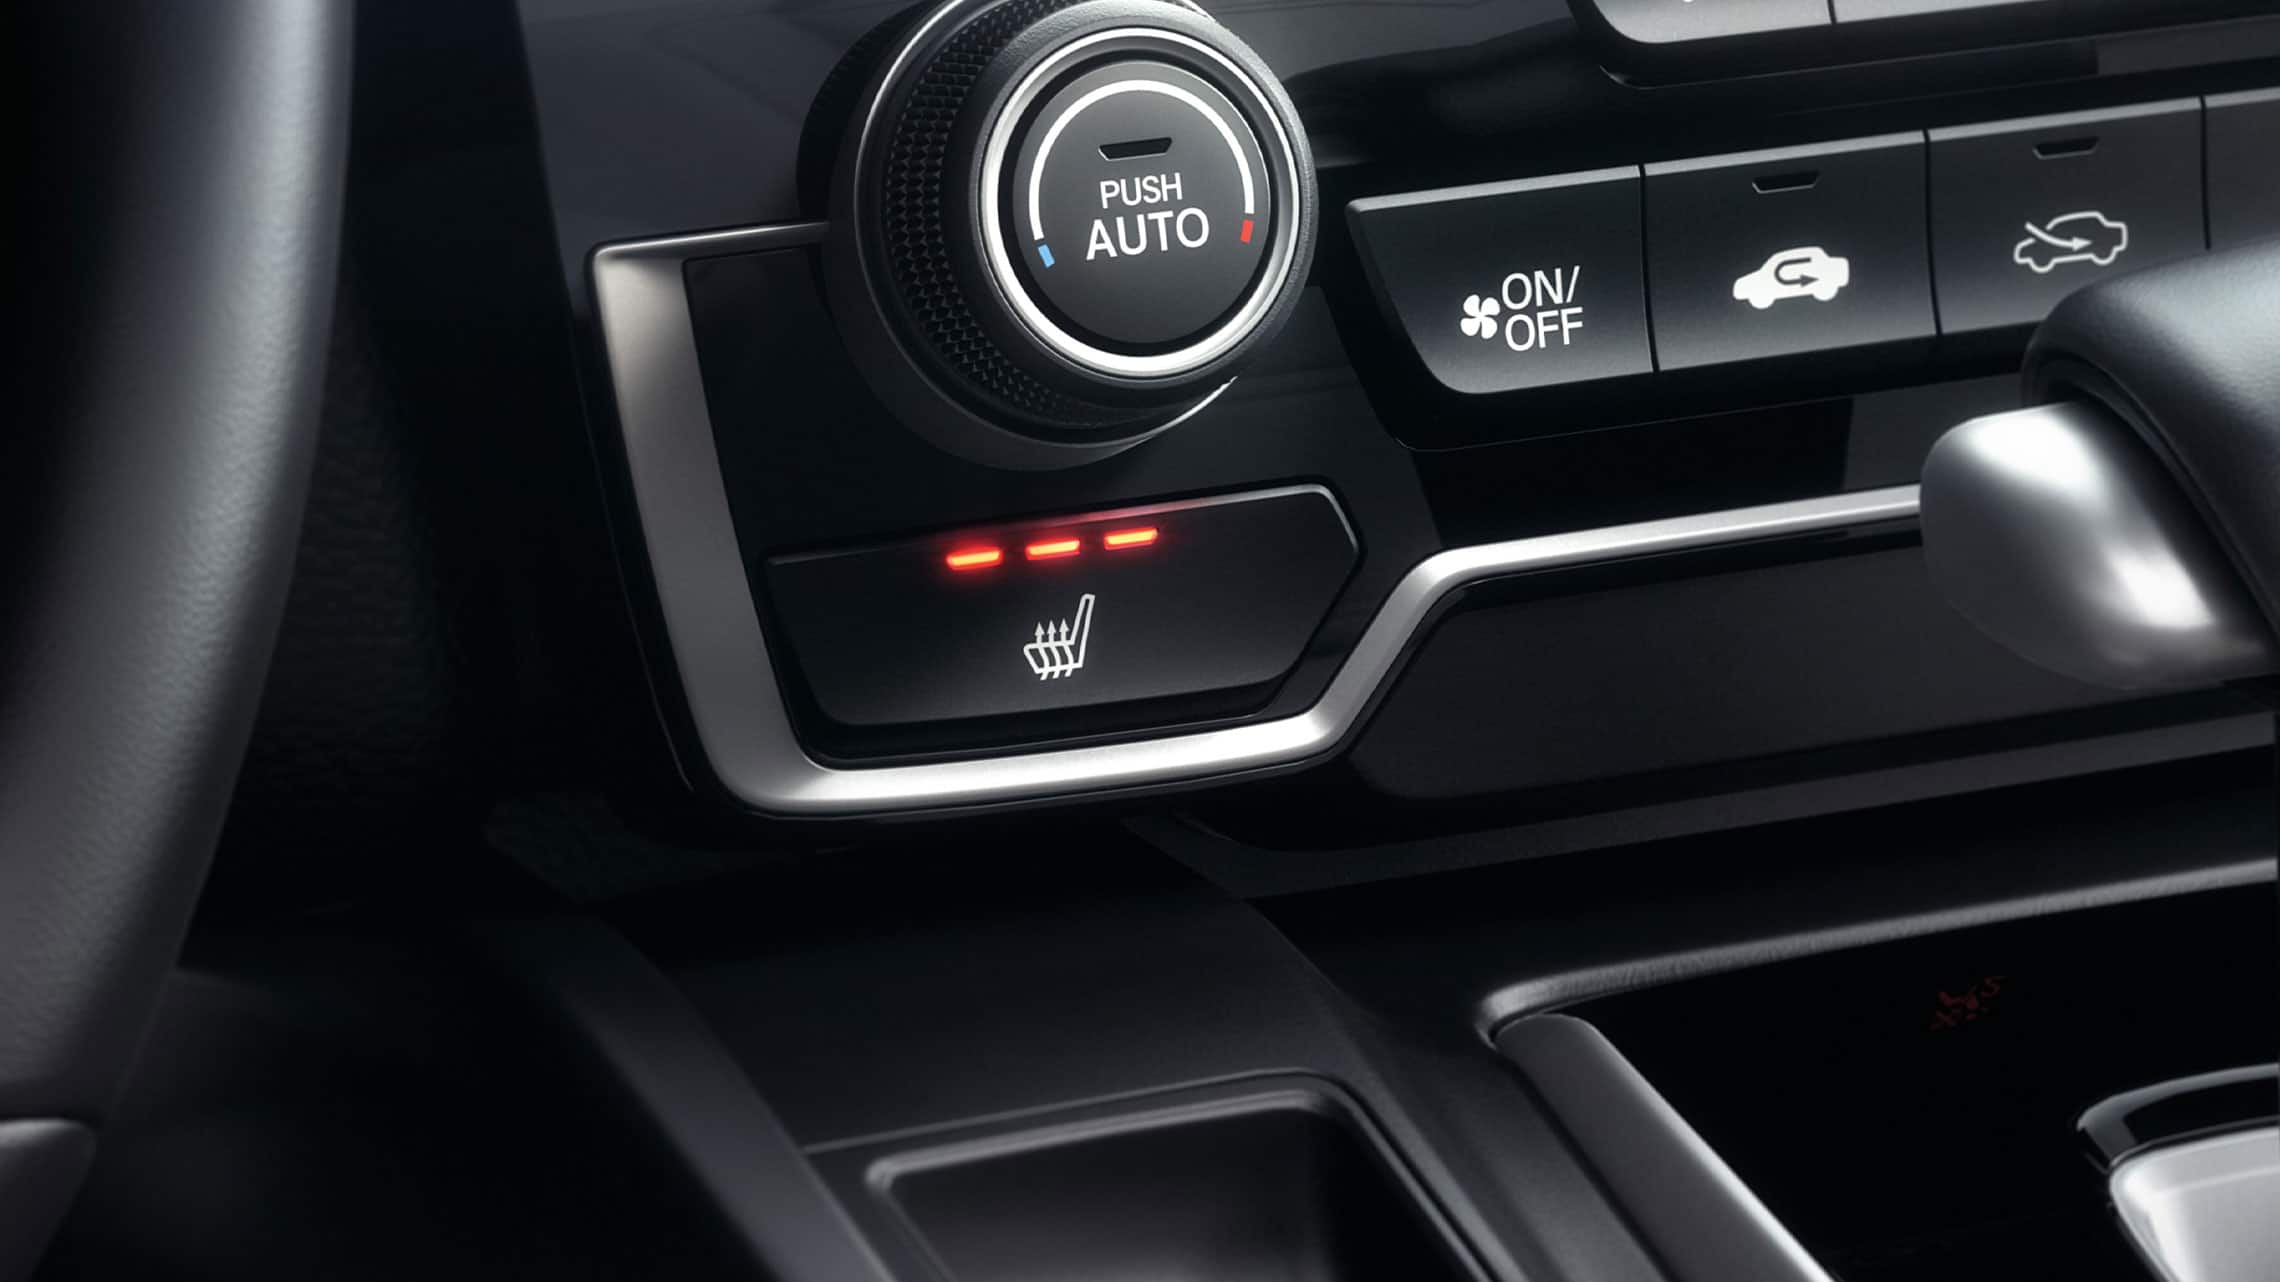 Heated front seat controls detail in the 2021 Honda CR-V with Black Leather.